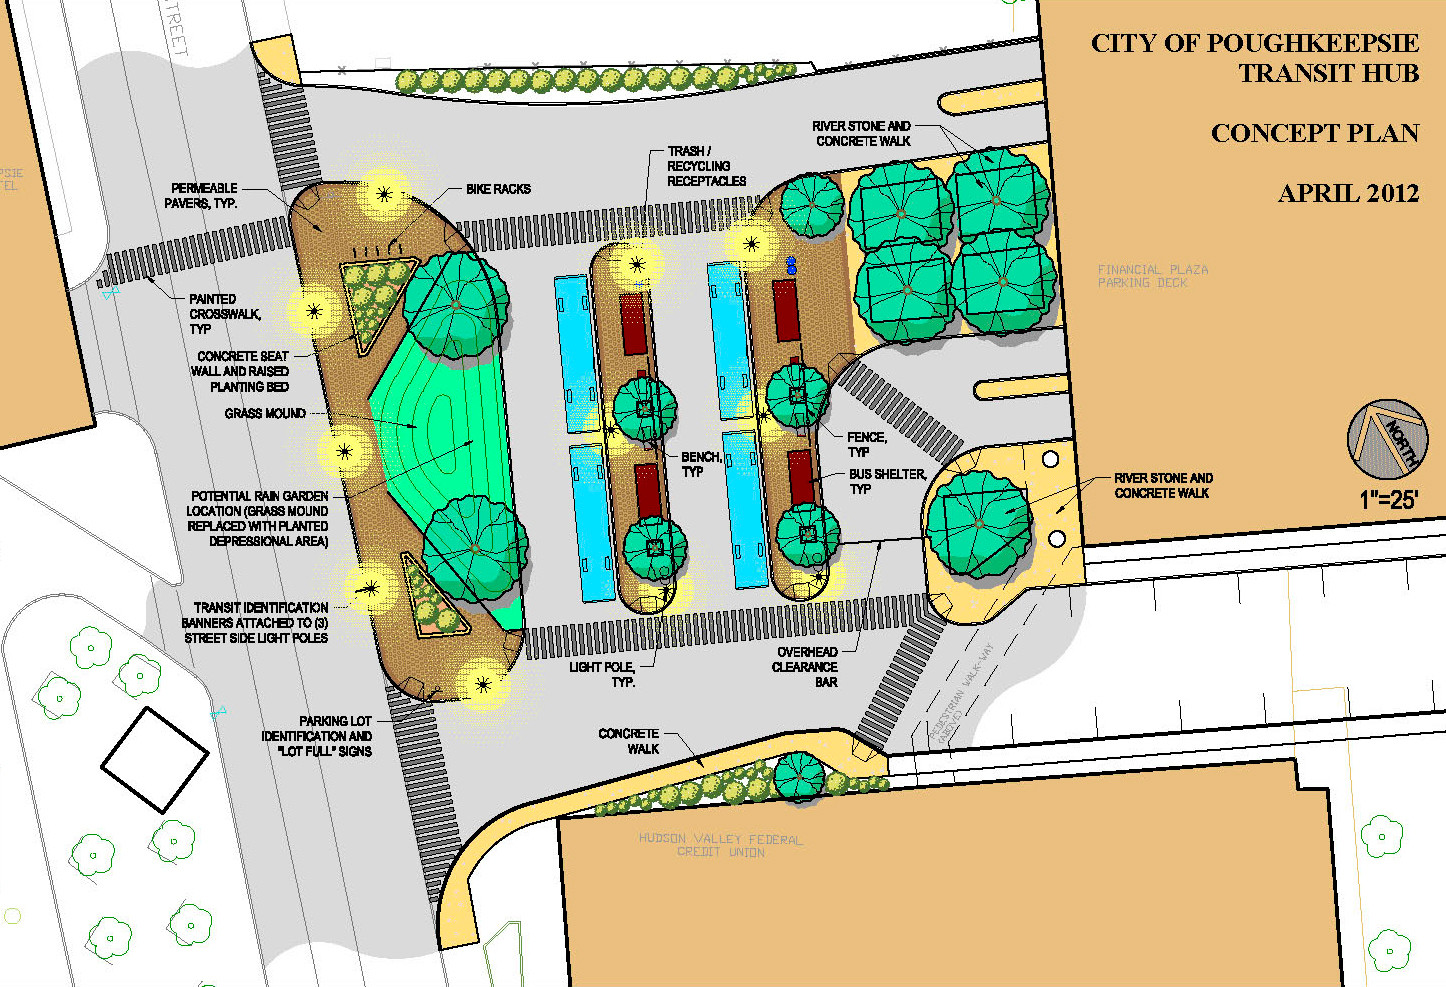 City of Poughkeepsie Bus Transit Hub - Site Plan